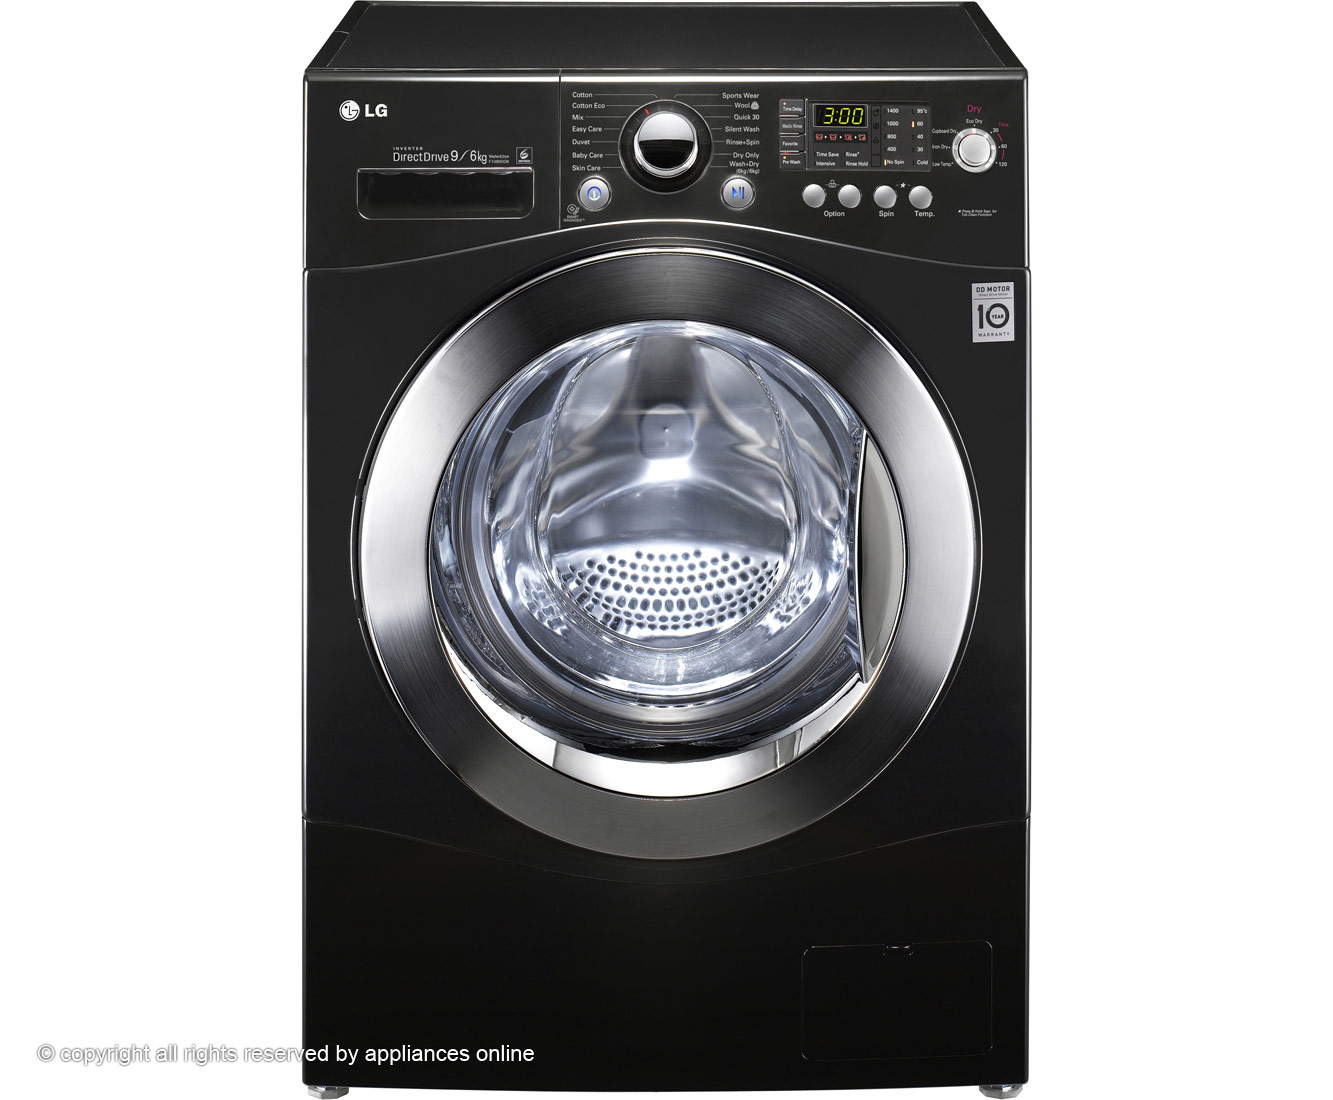 LG F1480RD6 9Kg / 6Kg Washer Dryer with 1400 rpm - Black